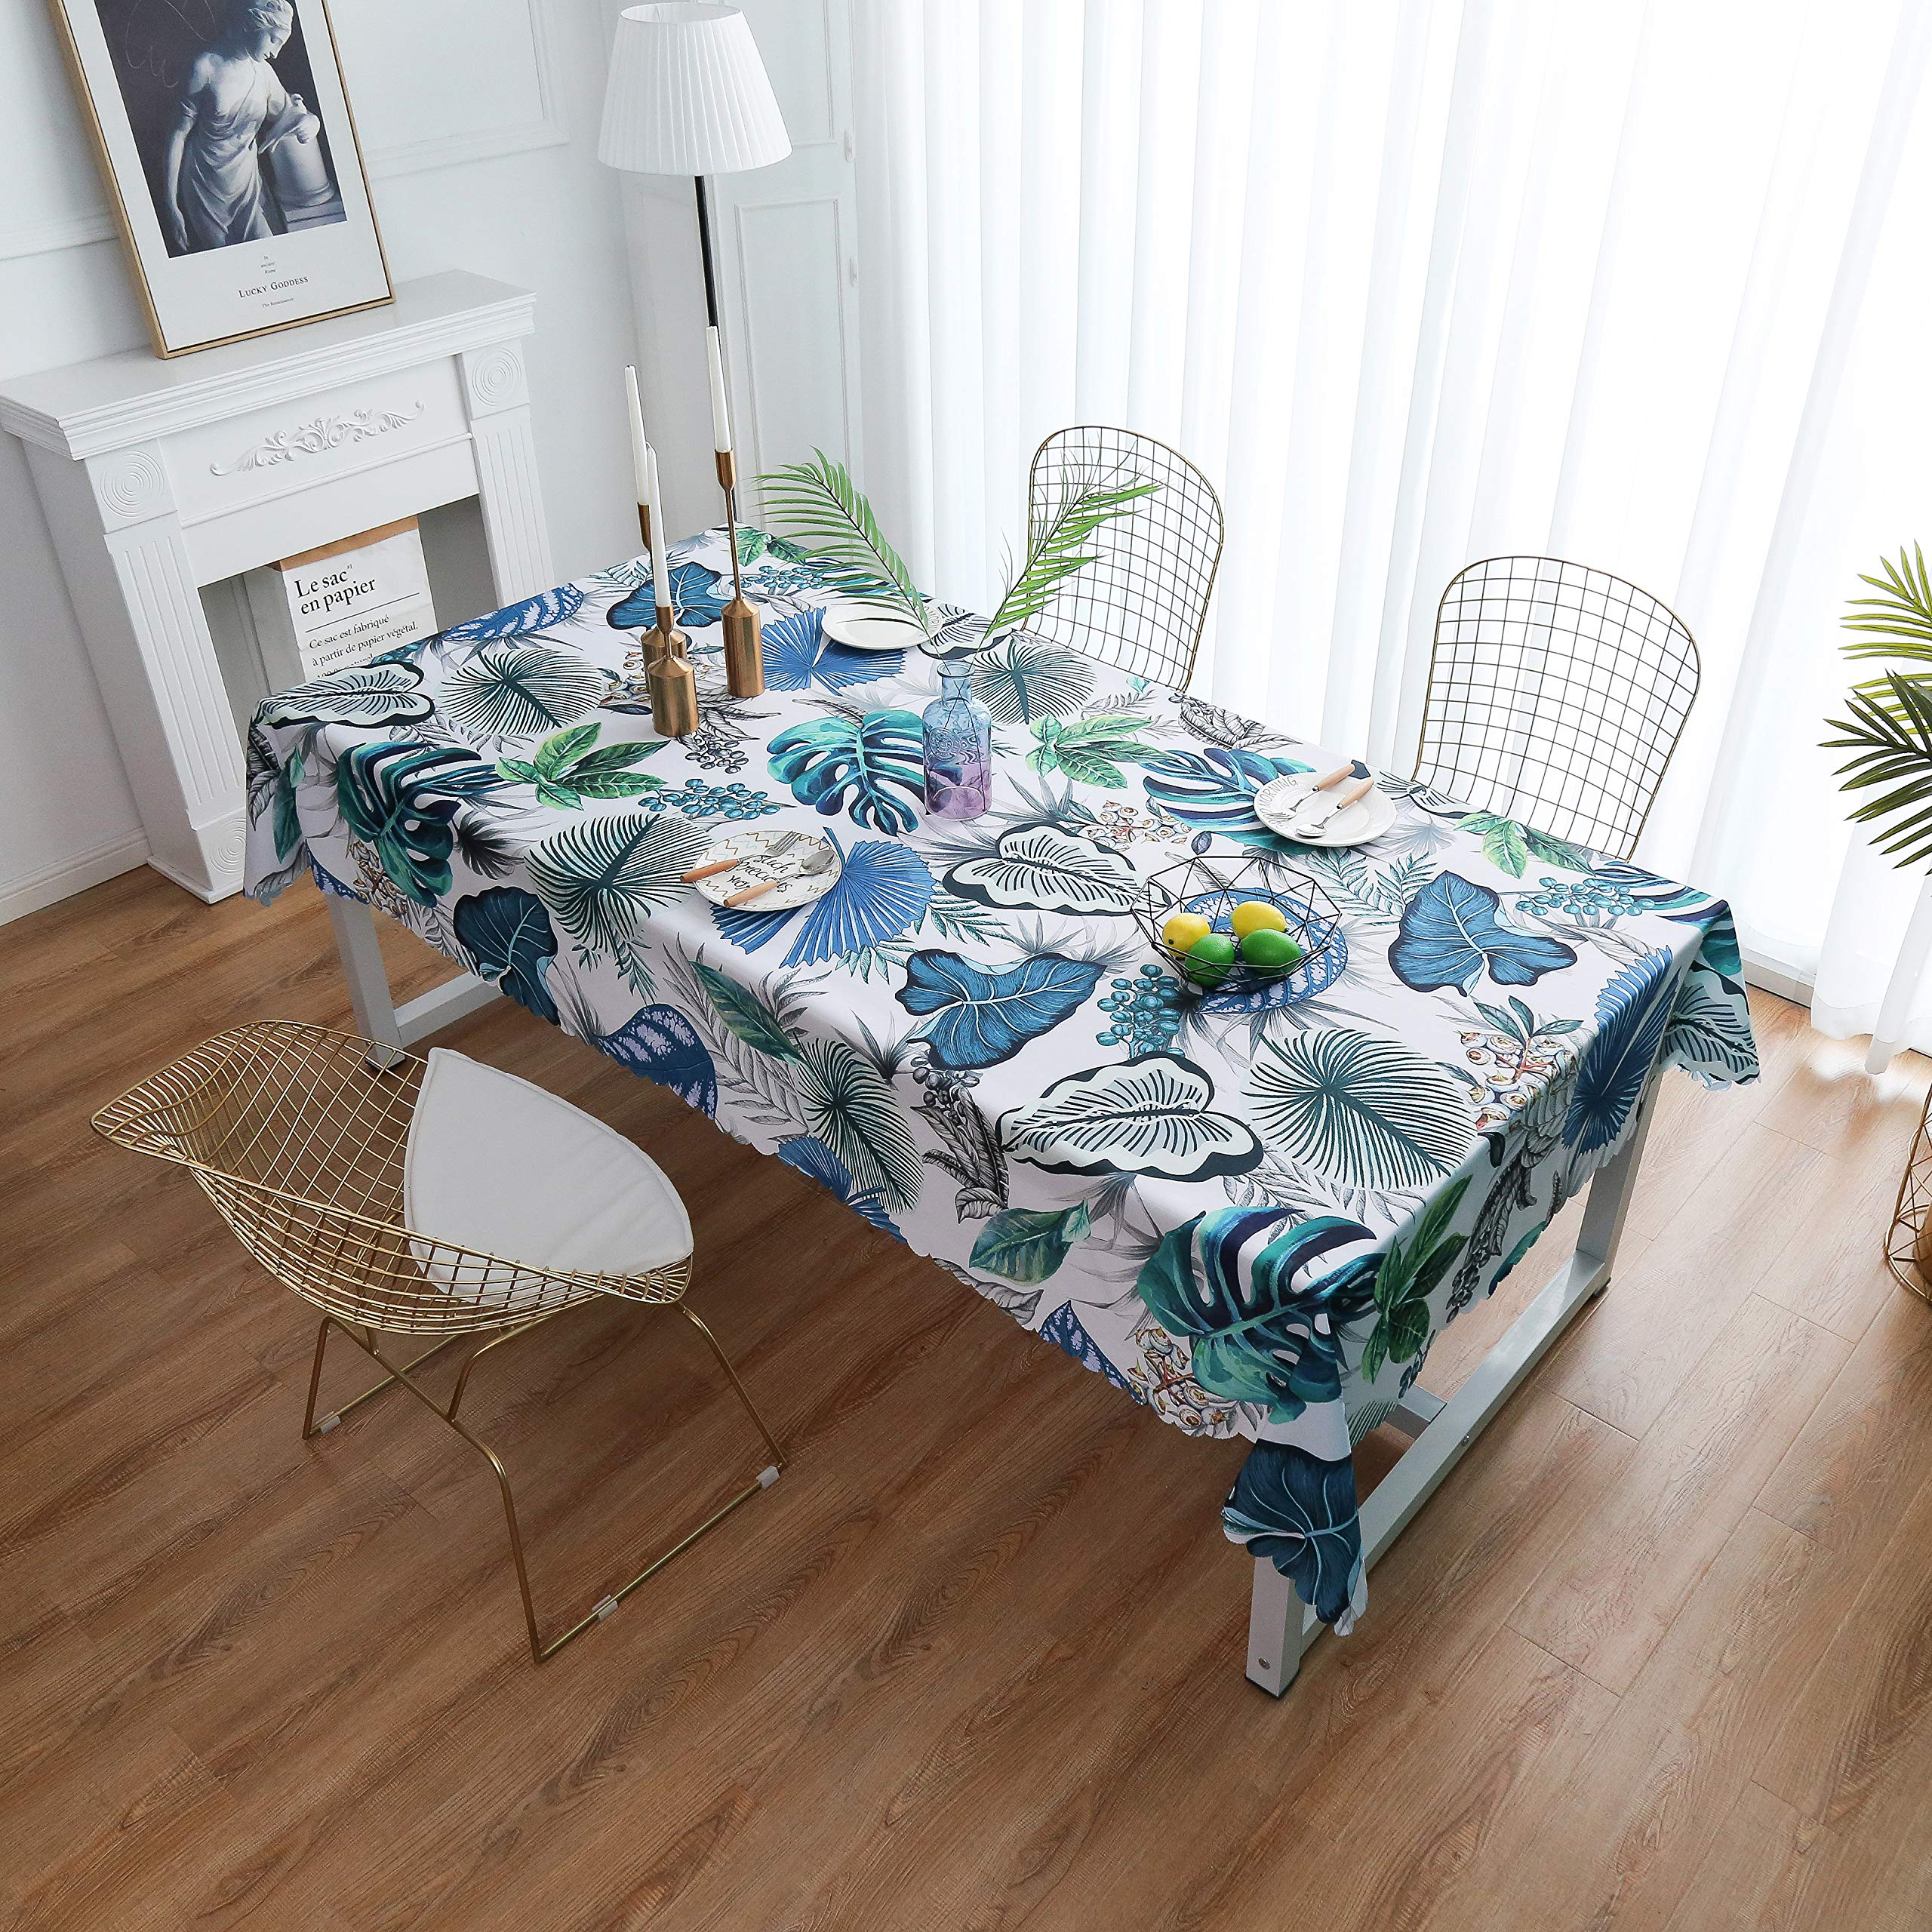 """iLiveX Tablecloth, Original Design Hand Drawing Art Print Table Cloth, Water-Proof Rectangle Table Cover, Kitchen Dining Indoor Outdoor Buffet Tabletop Decoration, 52""""x72"""" (Blue Tropical)"""